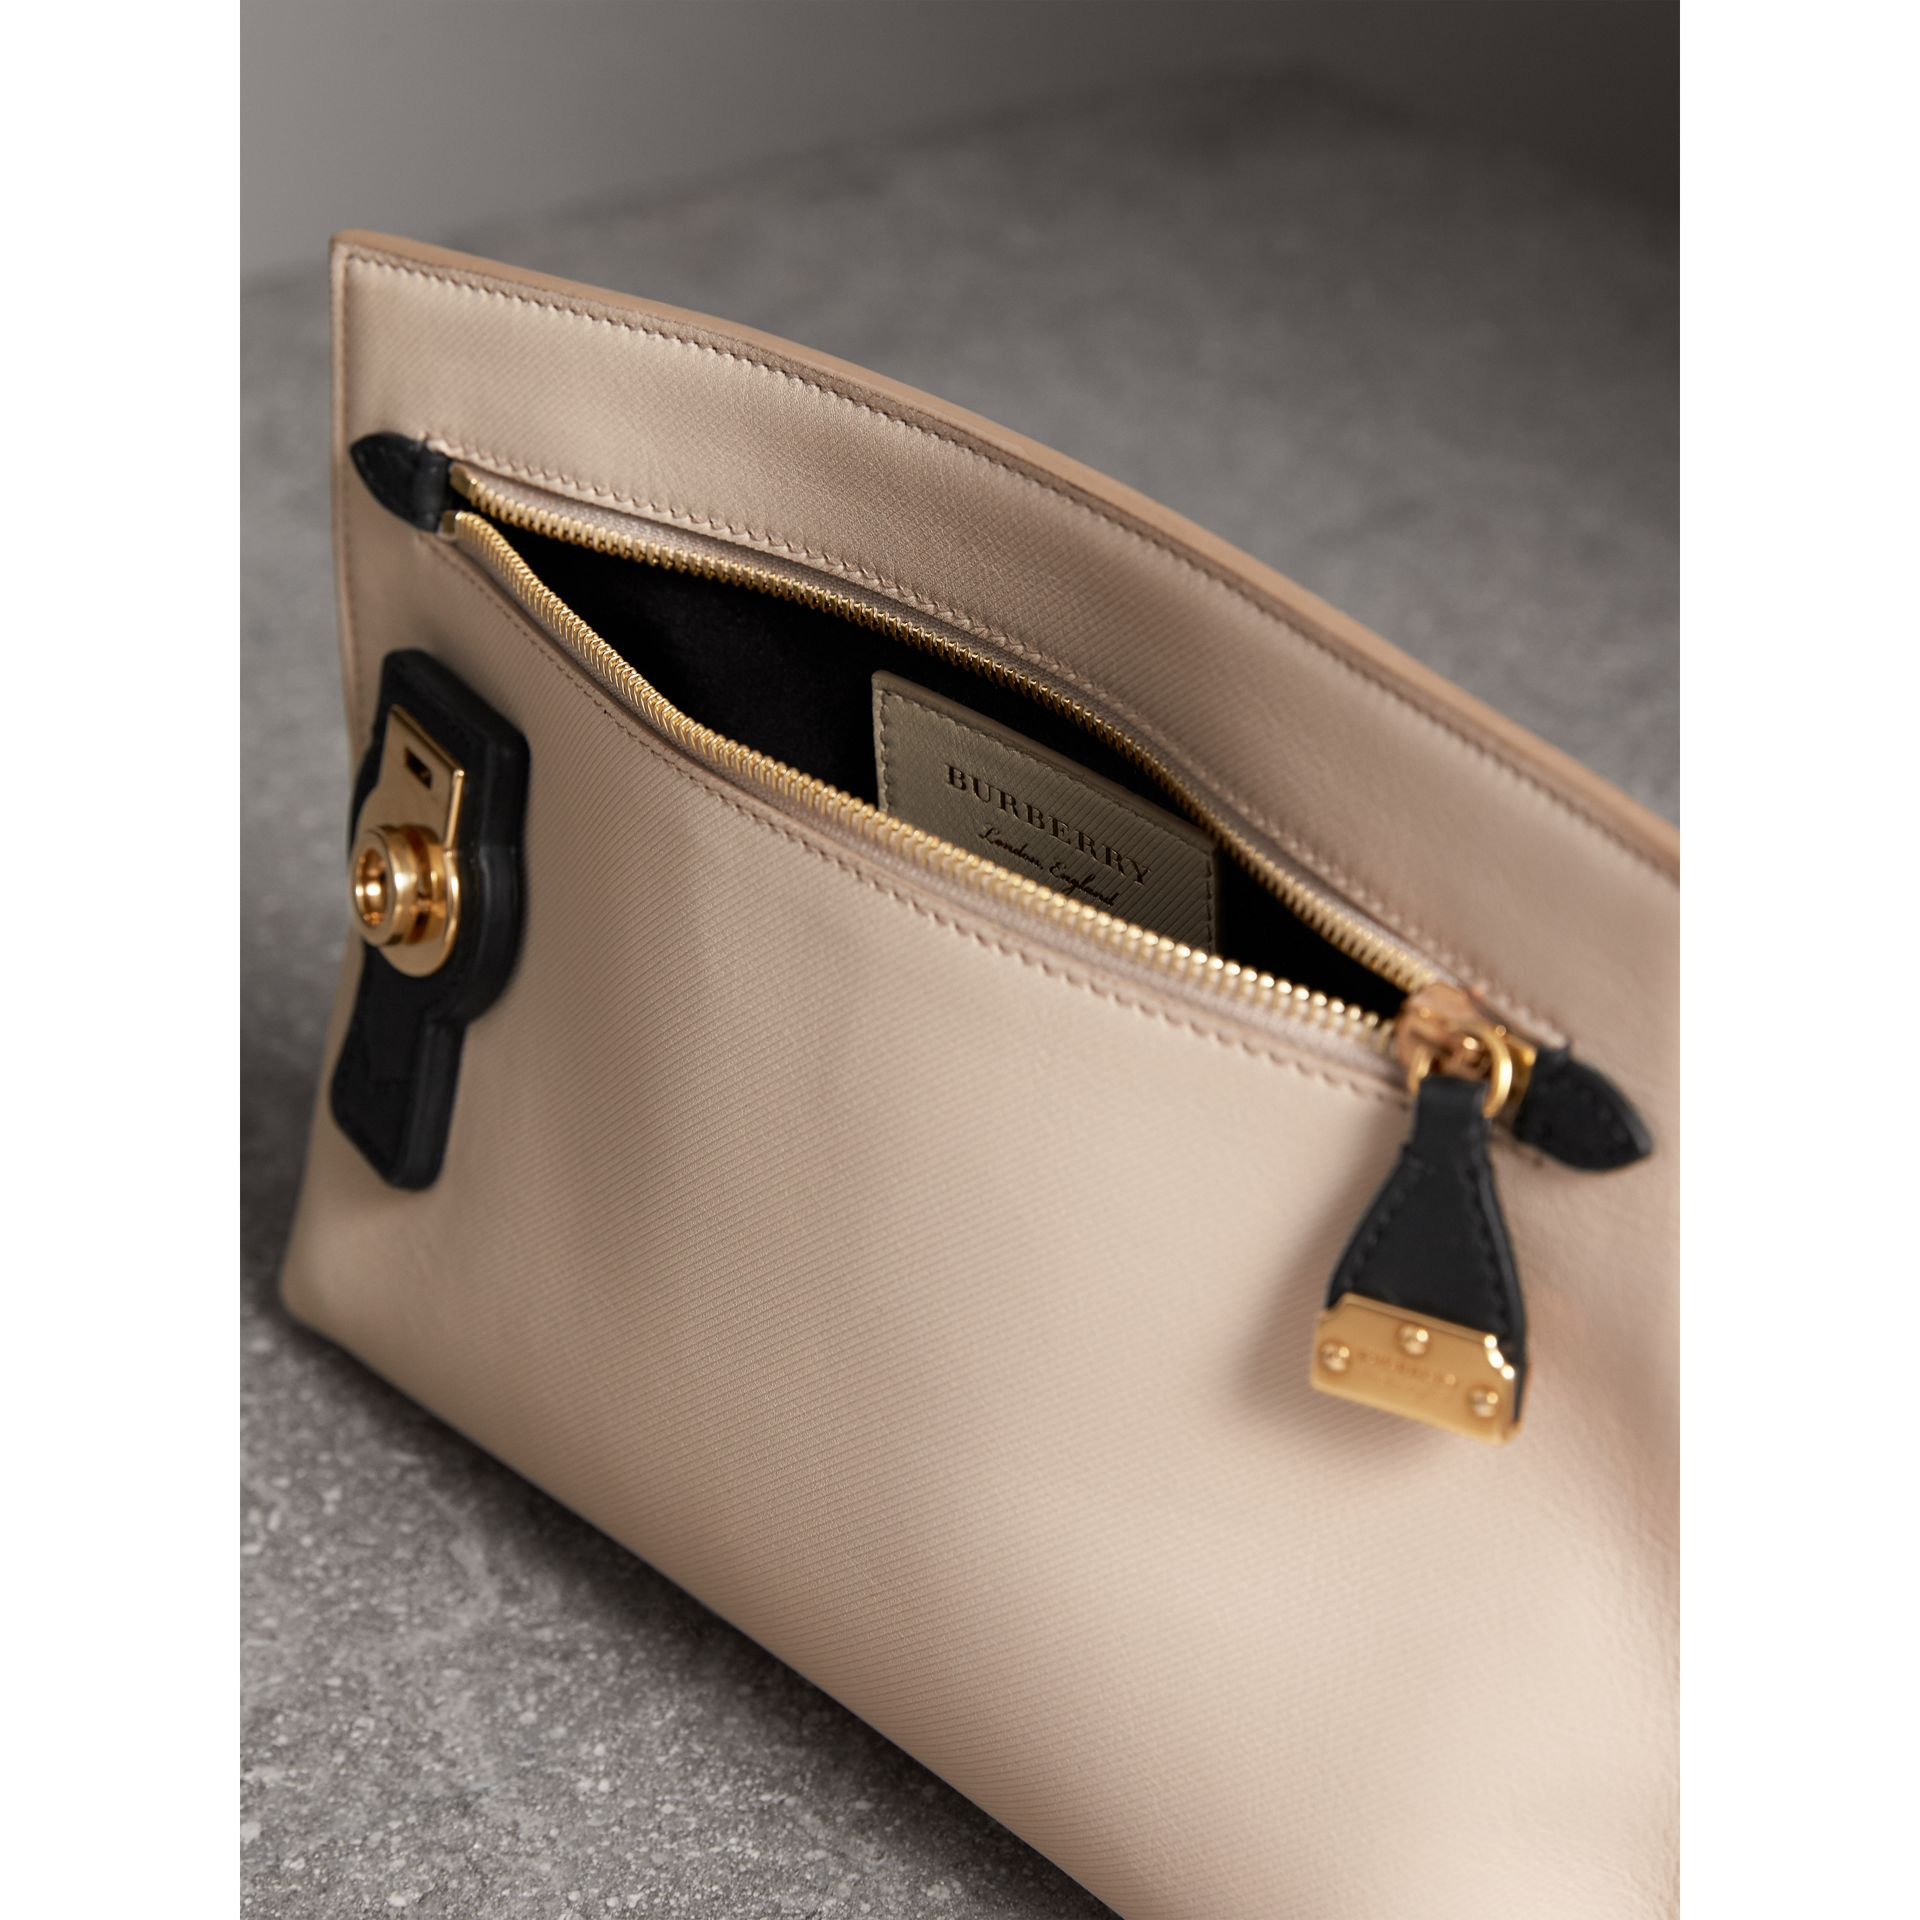 Two-tone Trench Leather Wristlet Pouch in Limestone/black - Women | Burberry - gallery image 4